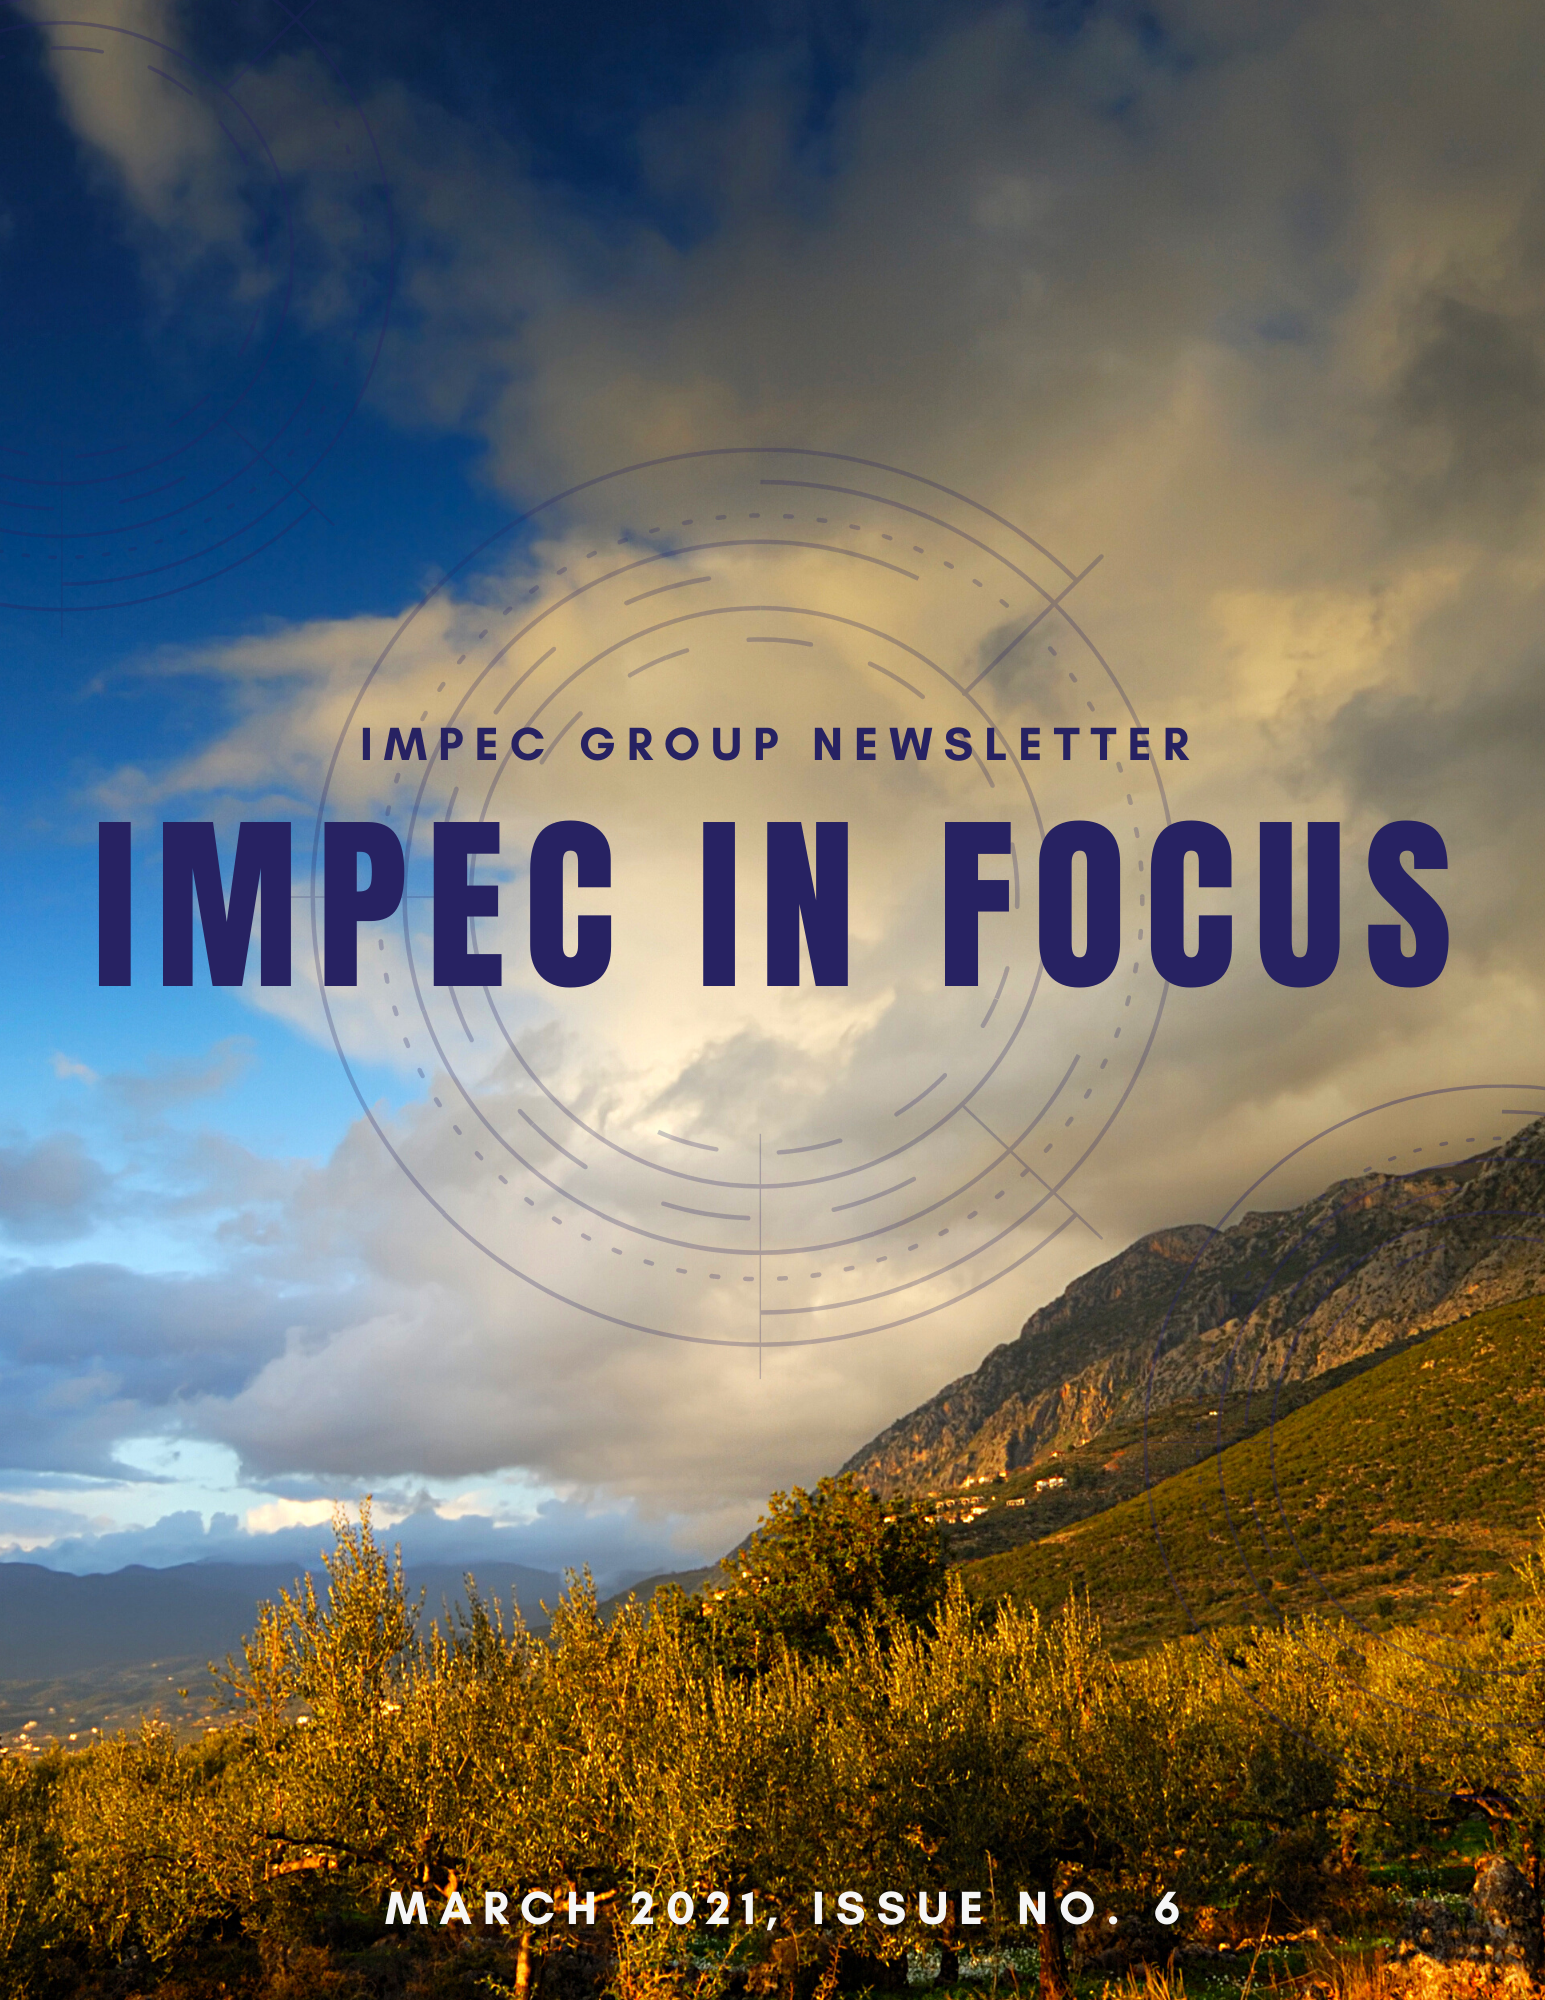 Impec Group March 2021 Newsletter